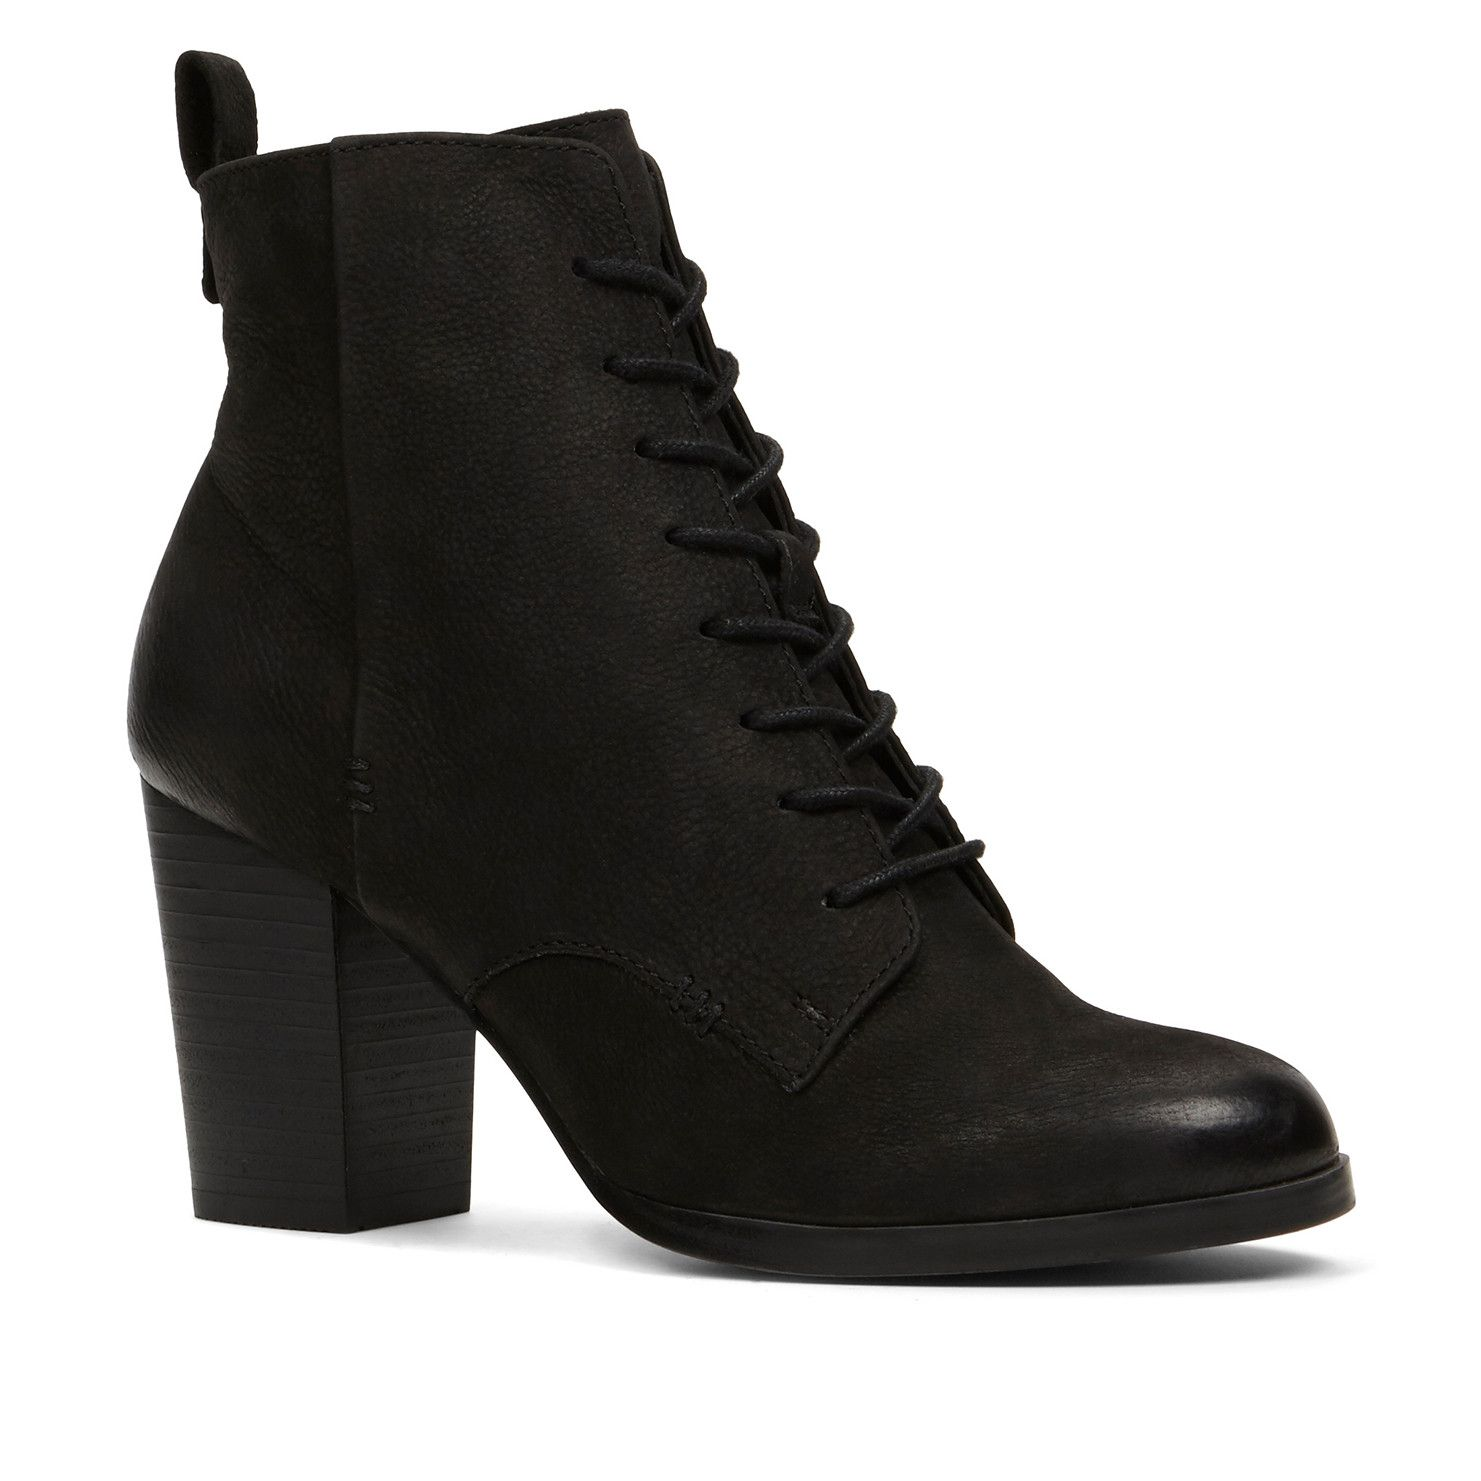 Aldo Women's Neily Ankle Boots | Boots, Ankle, Ankle boots